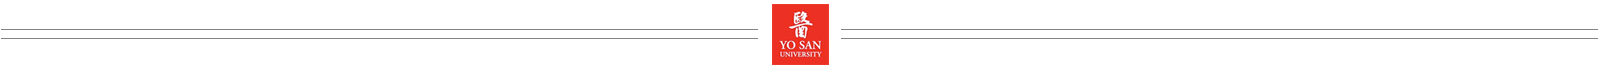 Ancient Wisdom | Modern Medicine at Yo San University